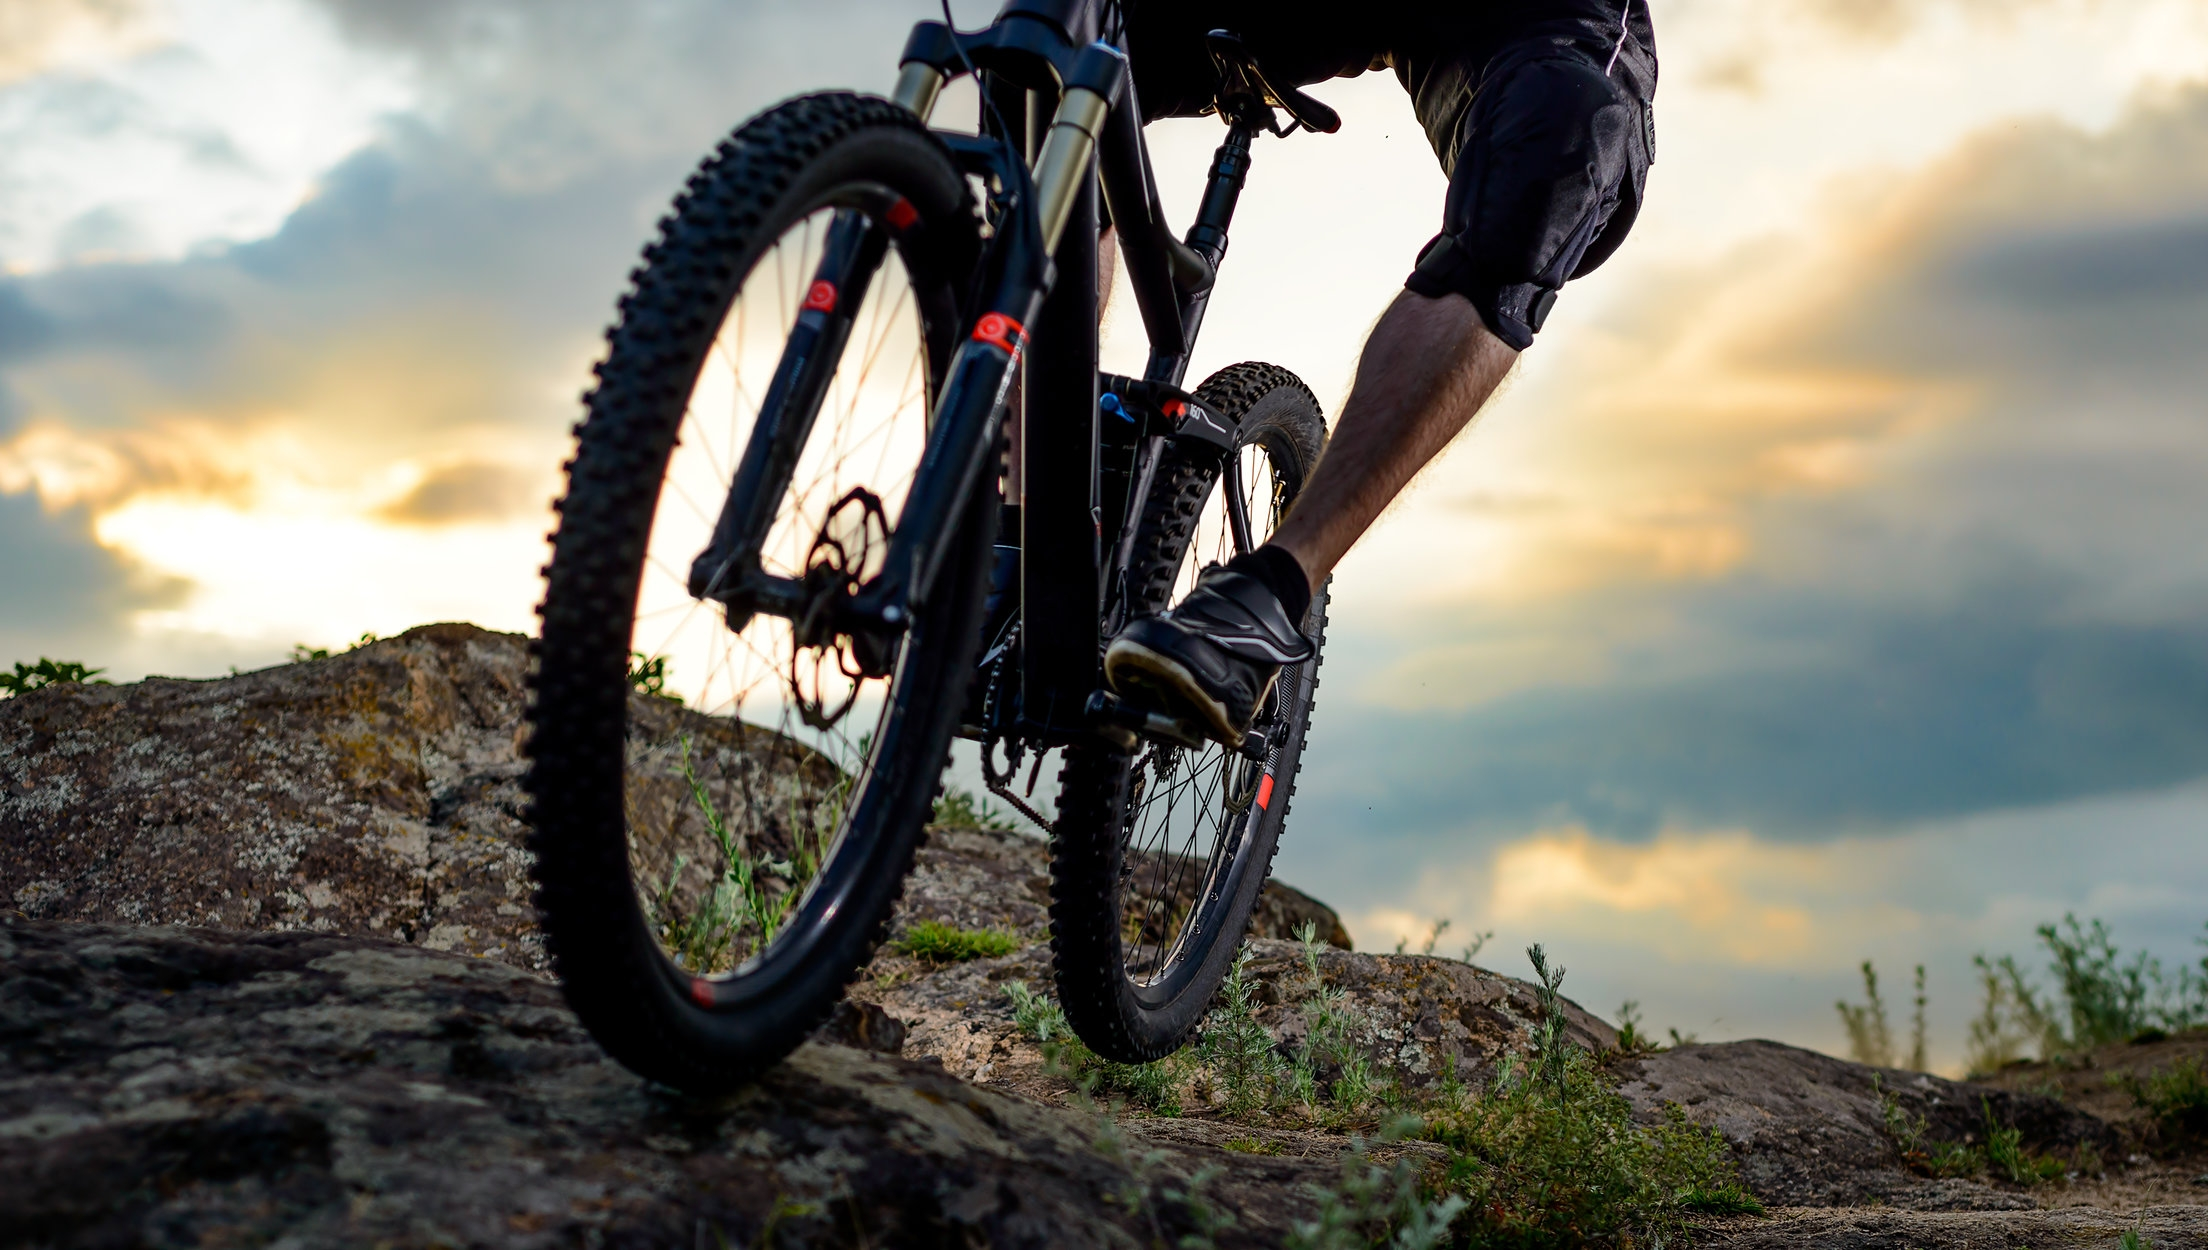 Hike & Bike - NEARLY 600 MILES OF HIKING AND MOUNTAIN BIKING TRAILS OFFER INCREDIBLE OPPORTUNITIES TO EXPLORE AND RIDE THE HILLS SURROUNDING PARK CITY AND DEER VALLEY.